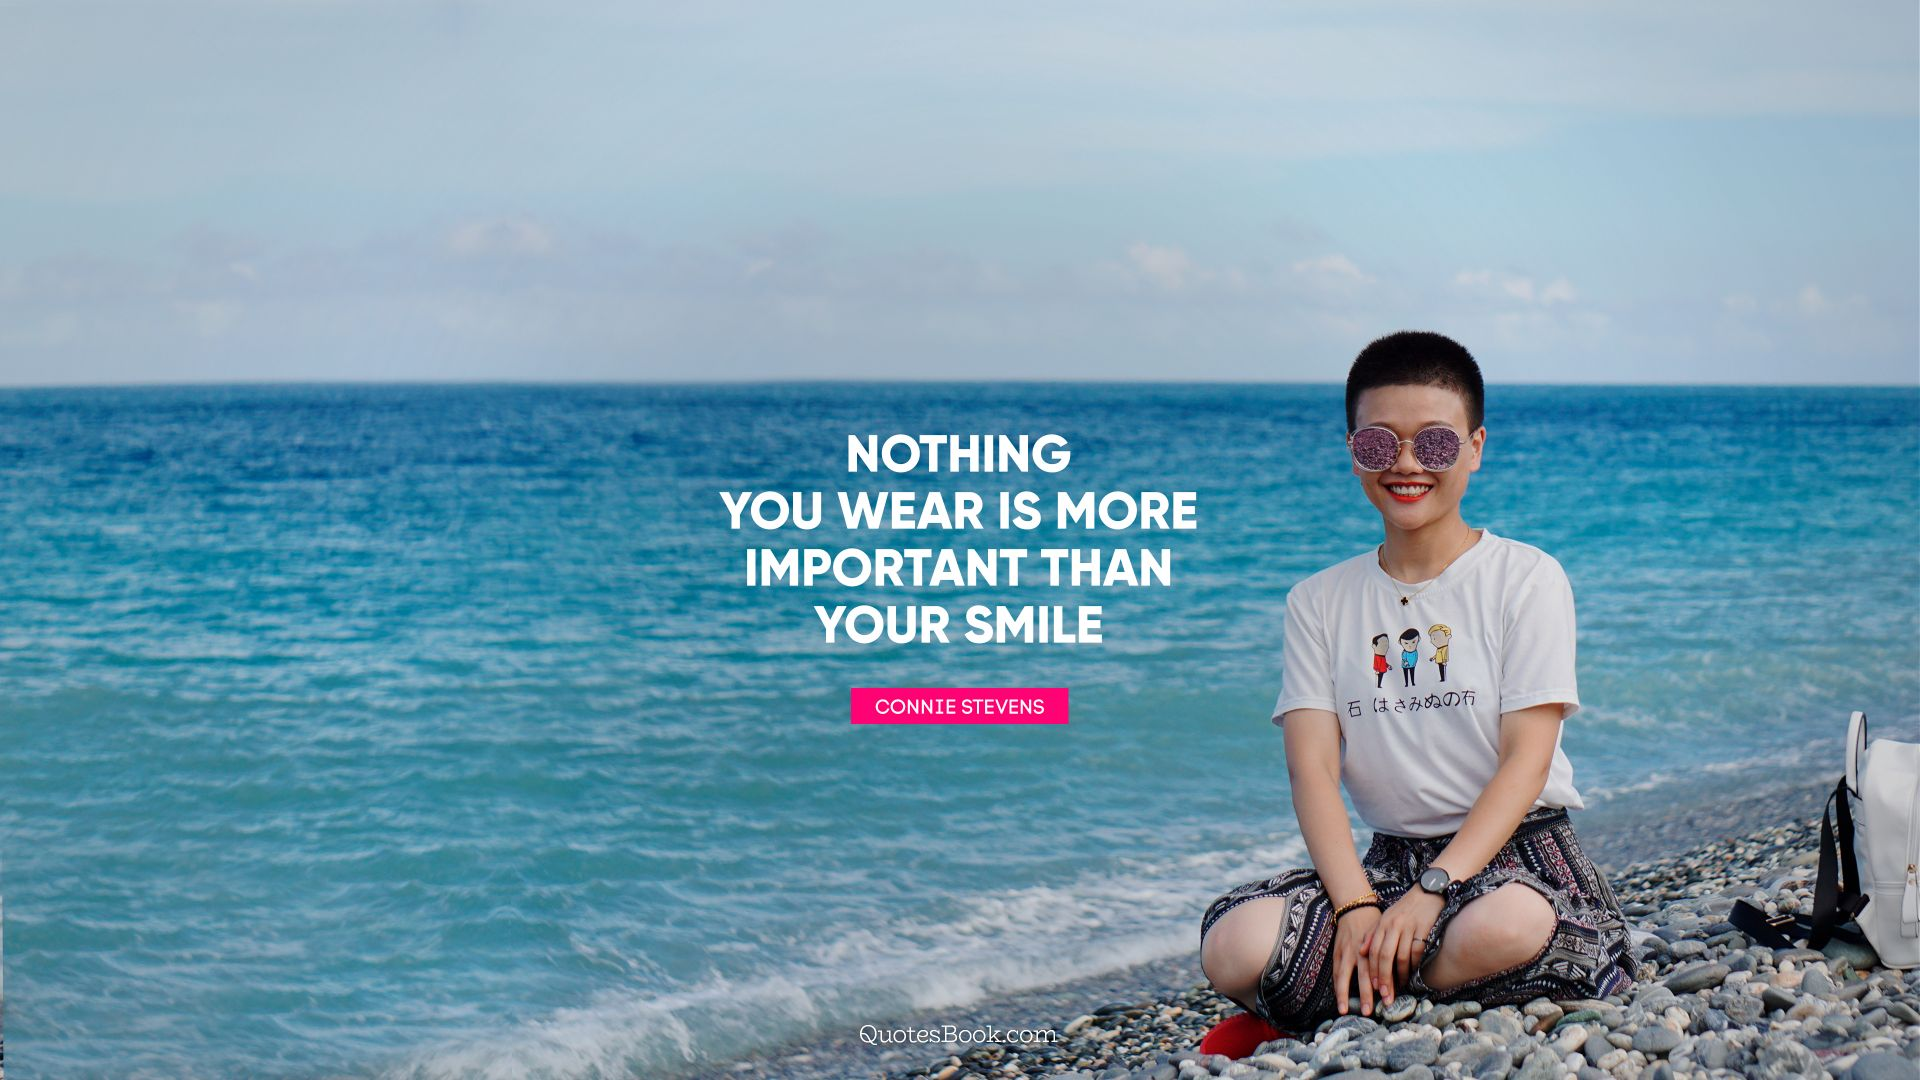 Nothing you wear is more important than your smile. - Quote by Connie Stevens